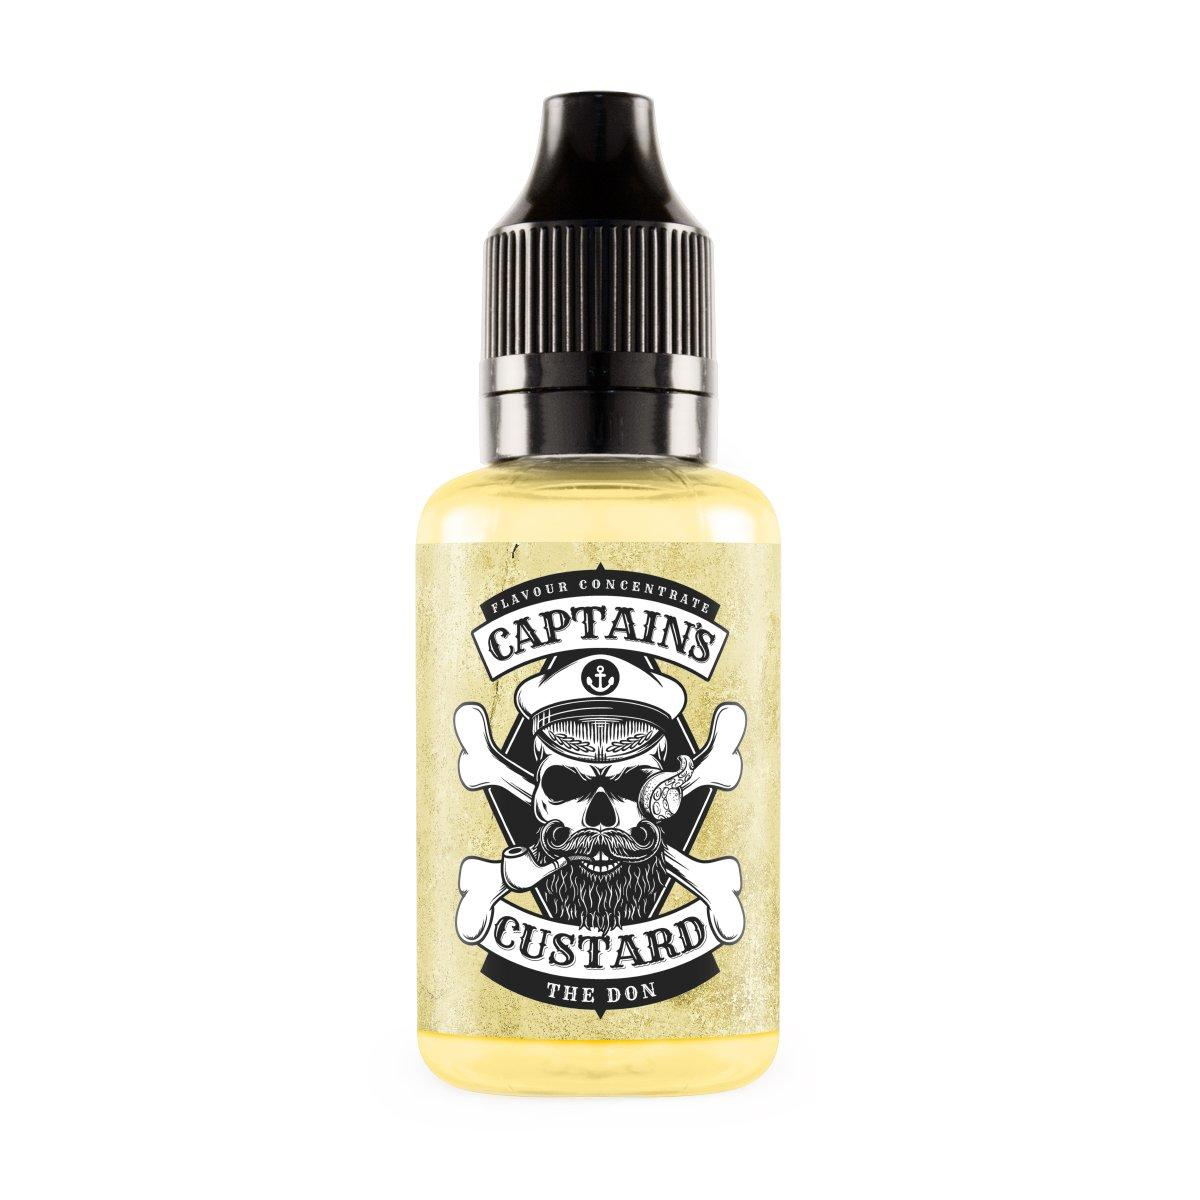 The Don Flavour Concentrate by Captains Custard